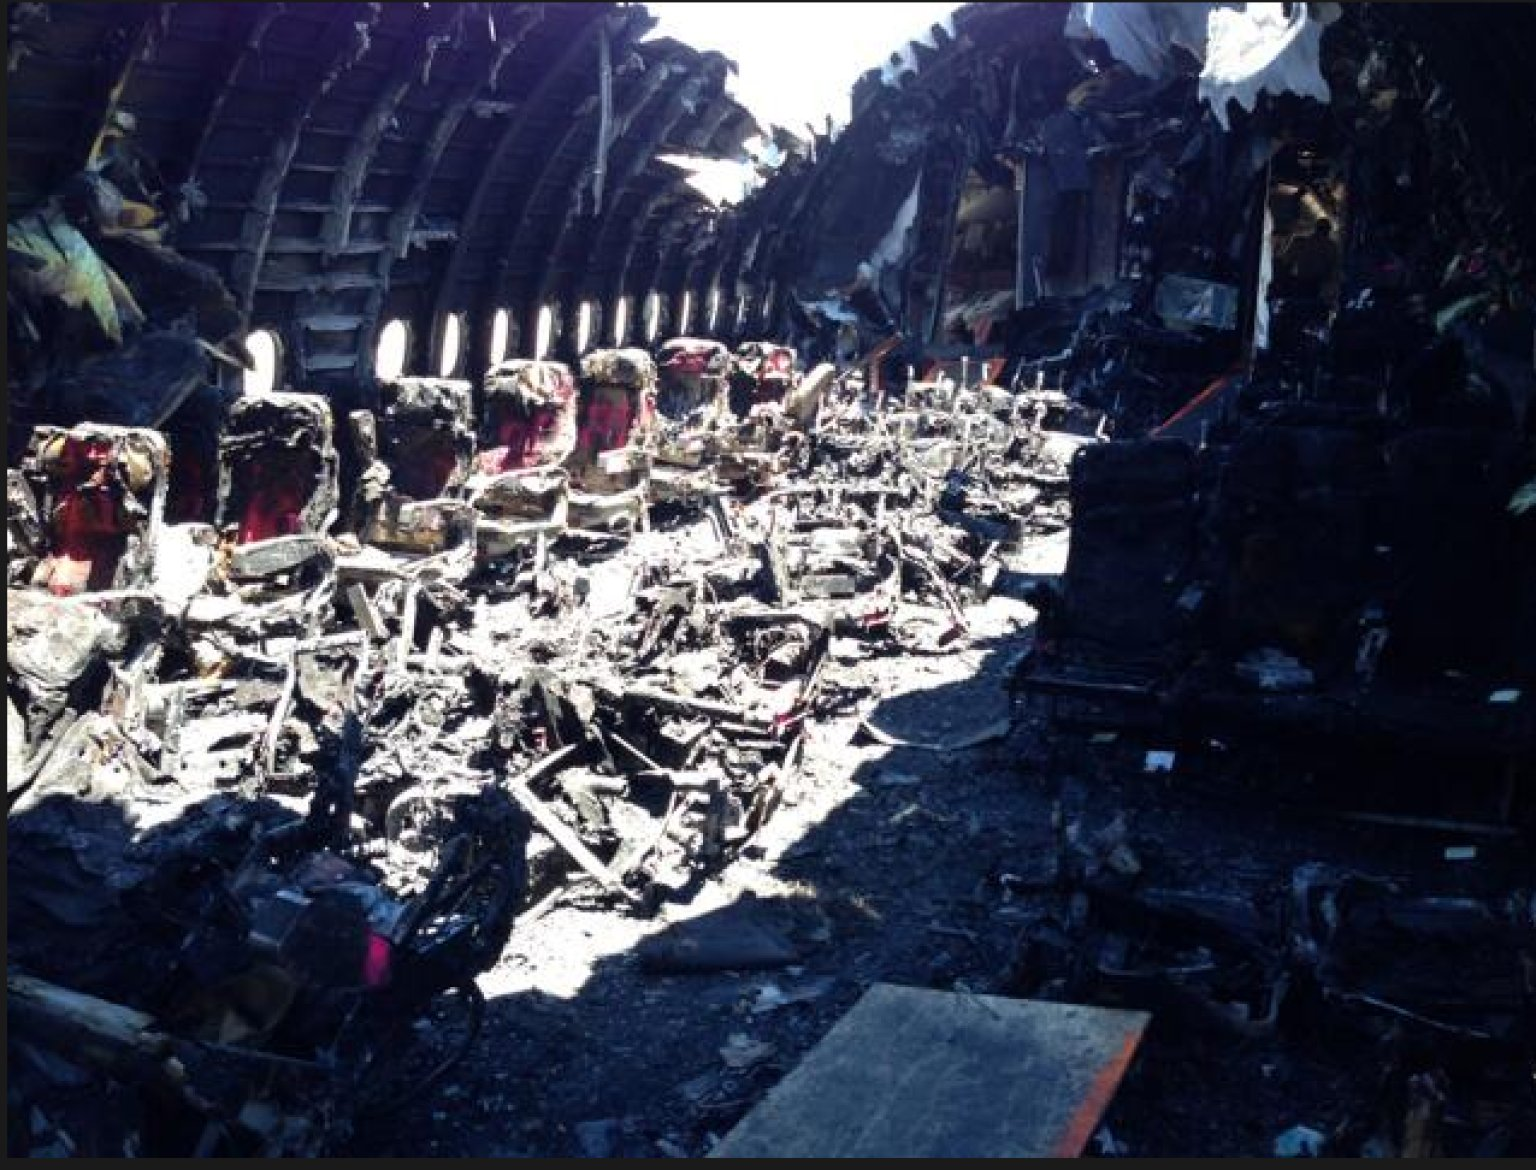 Asiana Cabin Photo Reveals Eerie Look At San Francisco ... United Airlines Flight 811 Human Remains